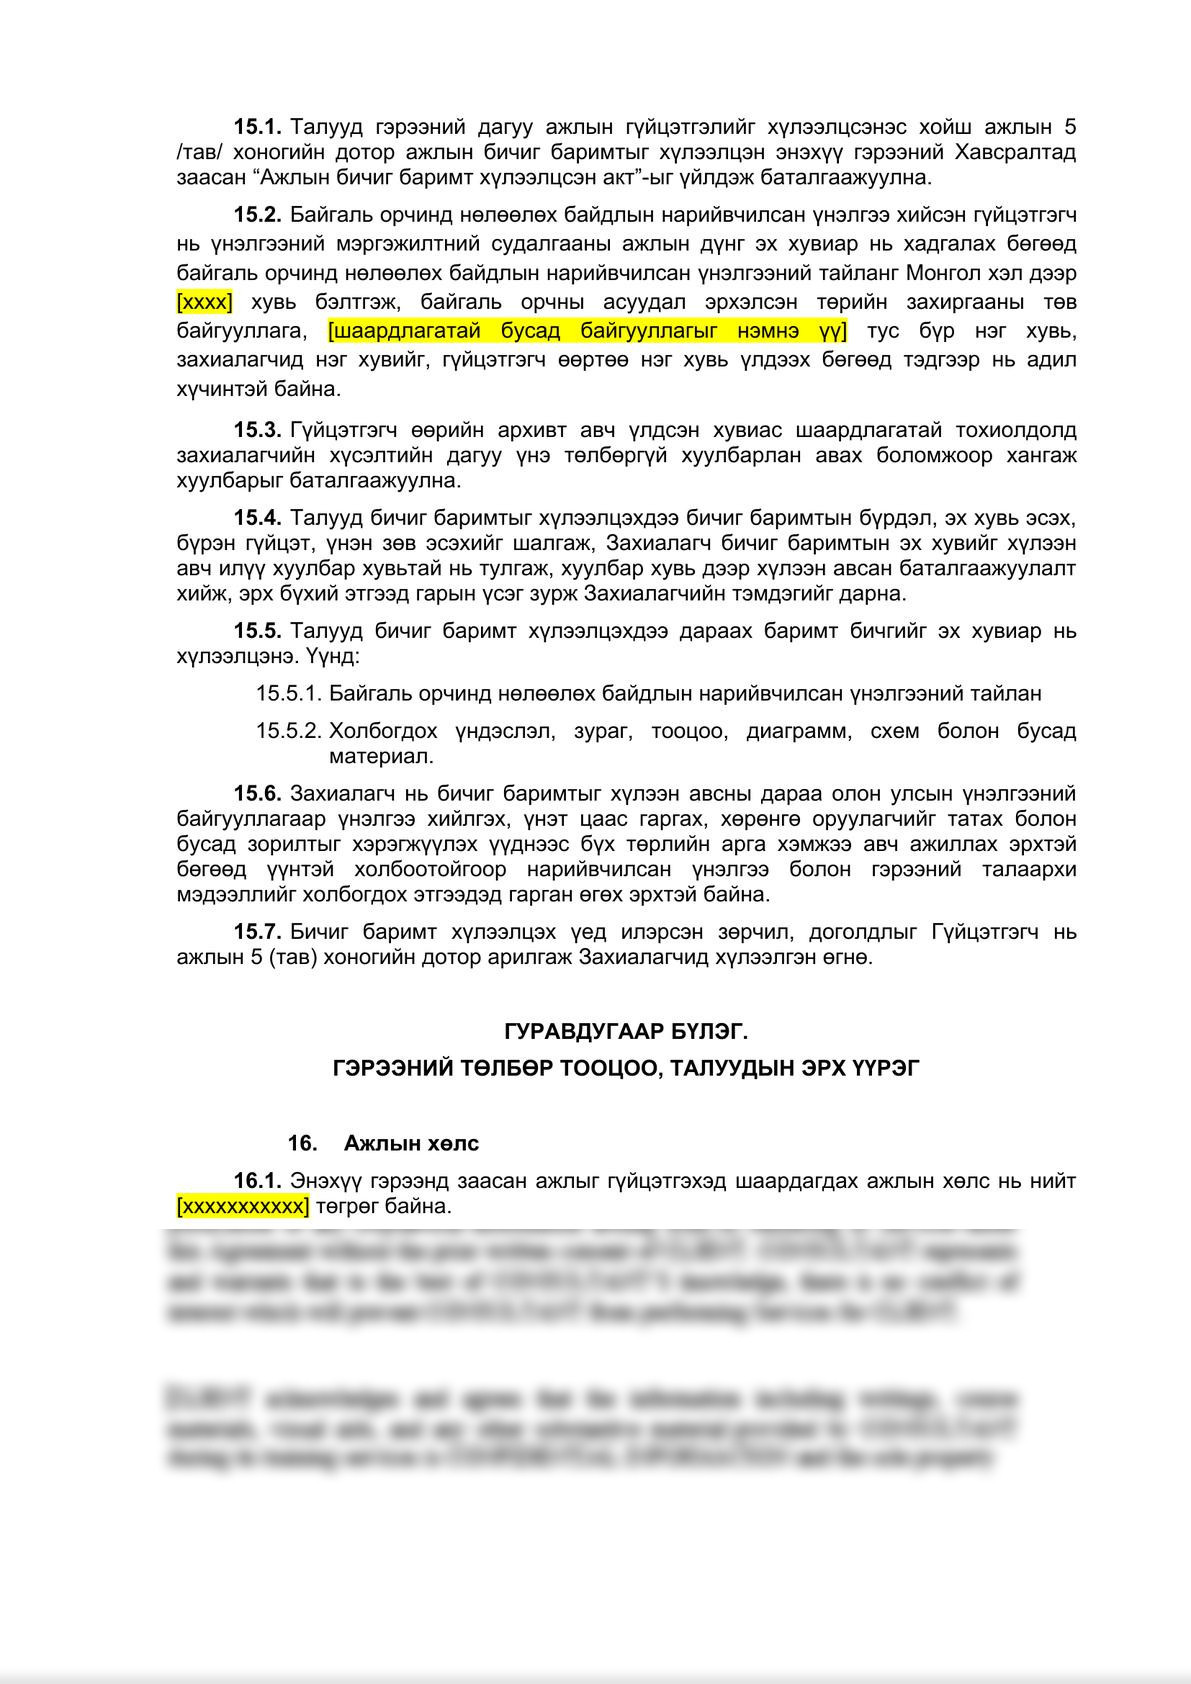 Contract for performing service for detailed environmental impact assessment-1